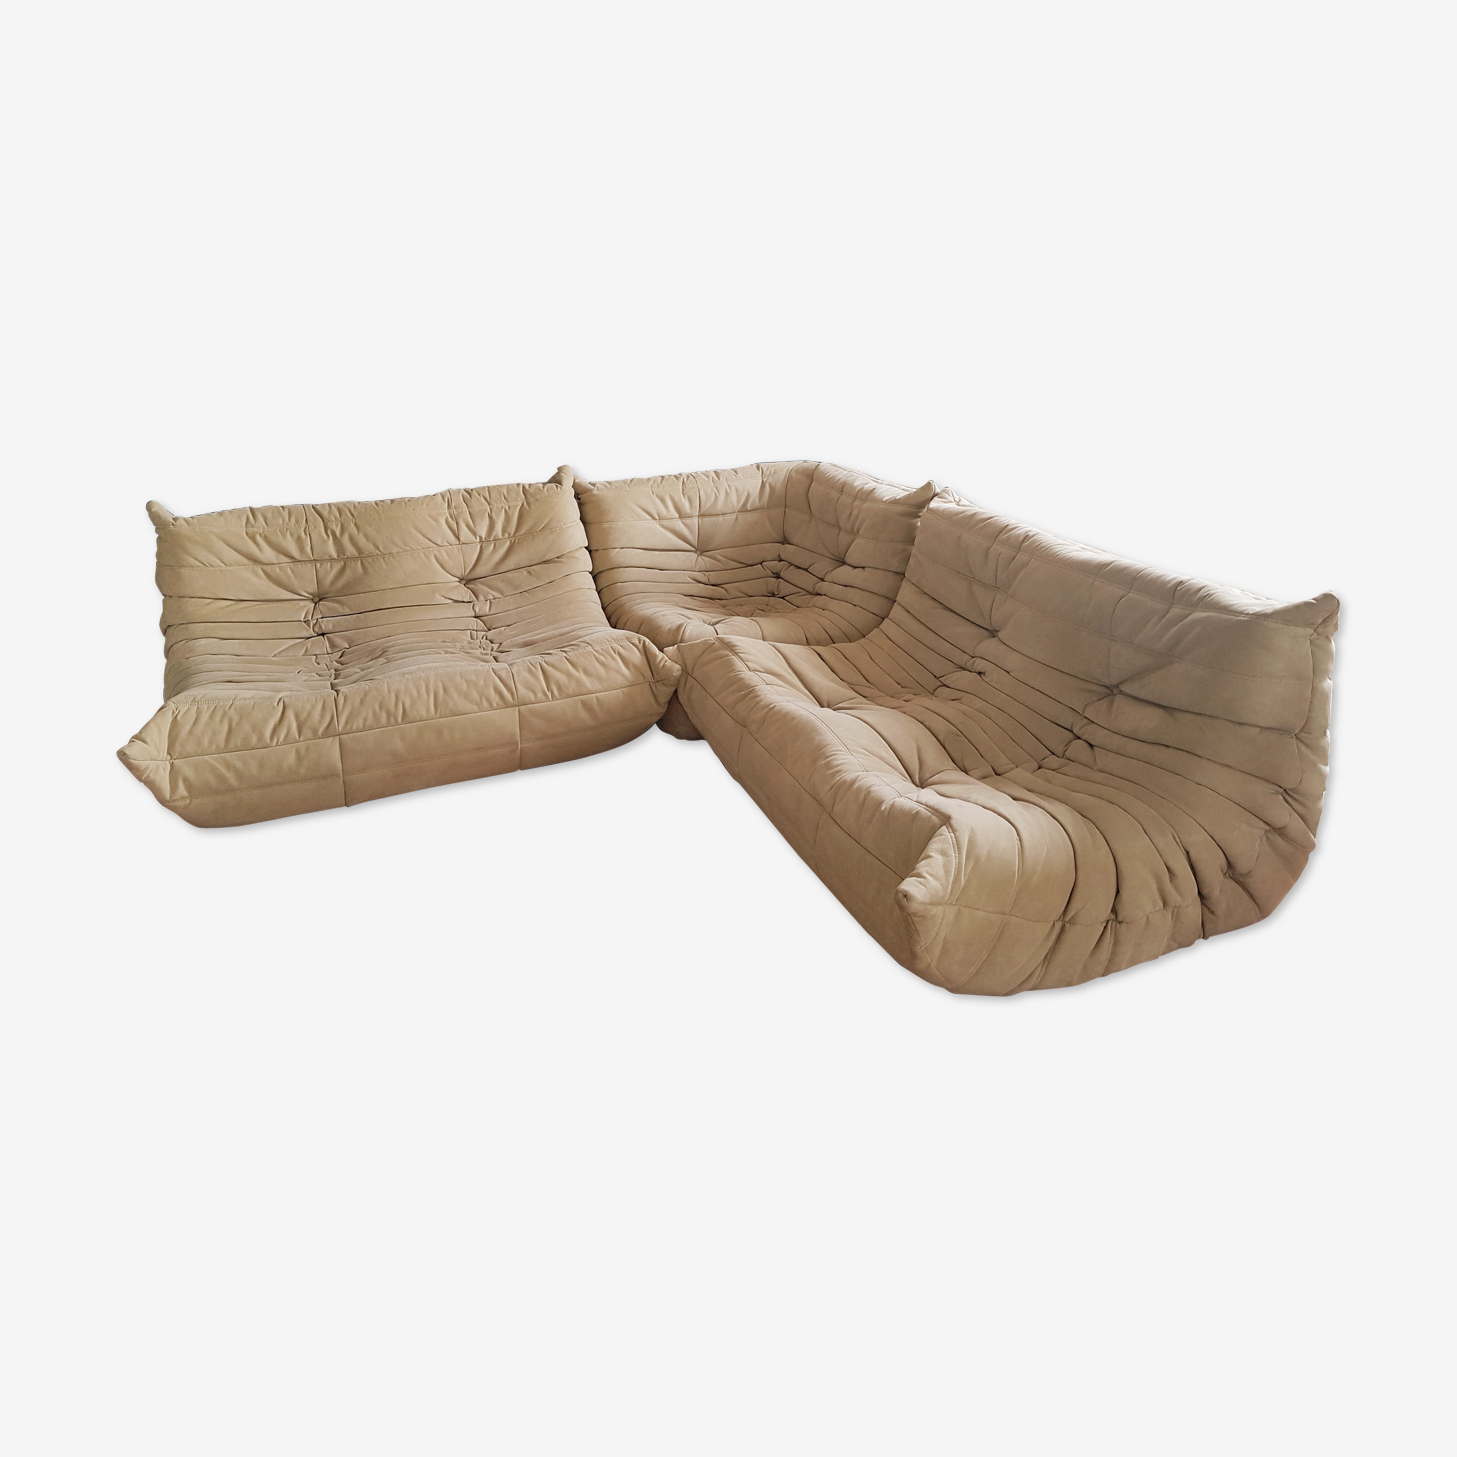 Corner sofa Togo by Michel Ducaroy for Ligne Roset